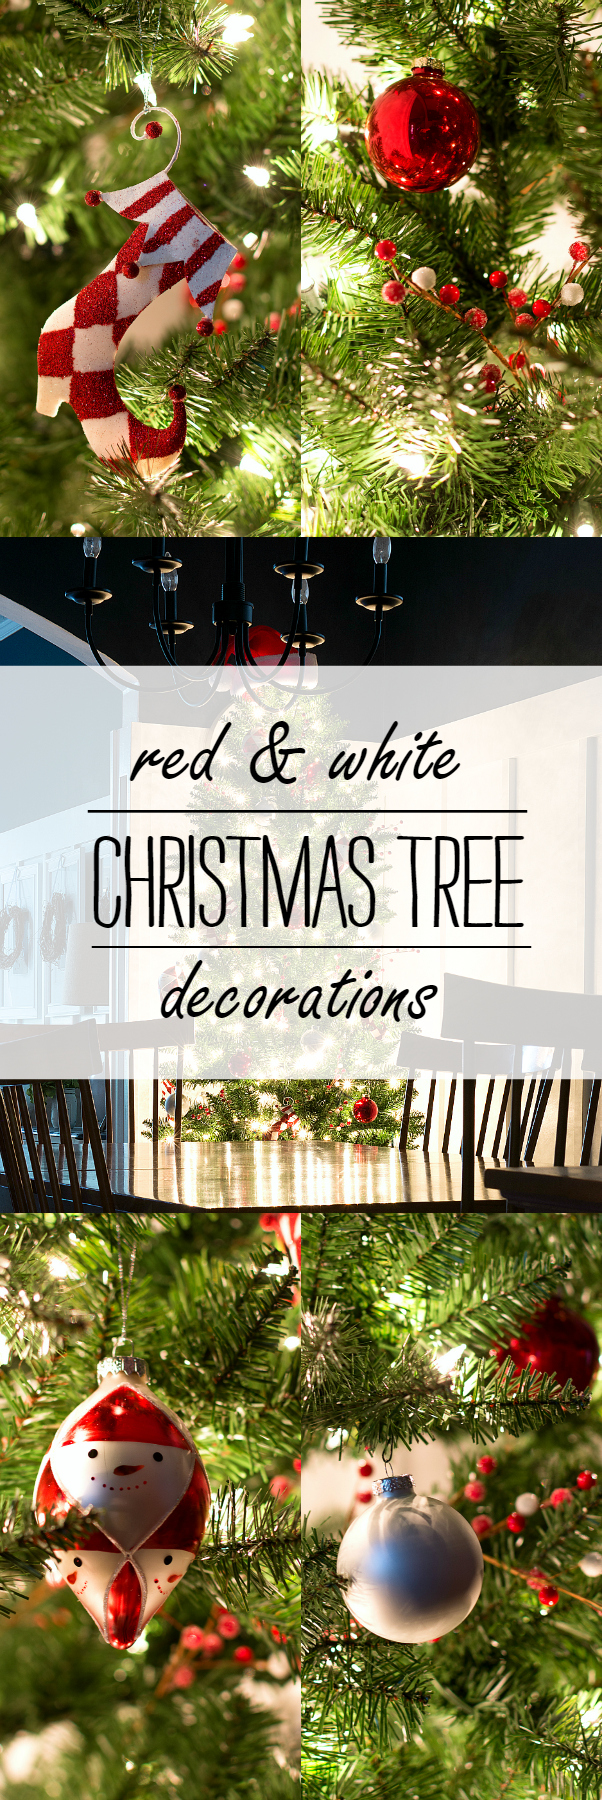 Red and white christmas tree decorating ideas - Christmas Tree Decorating Ideas Red And White